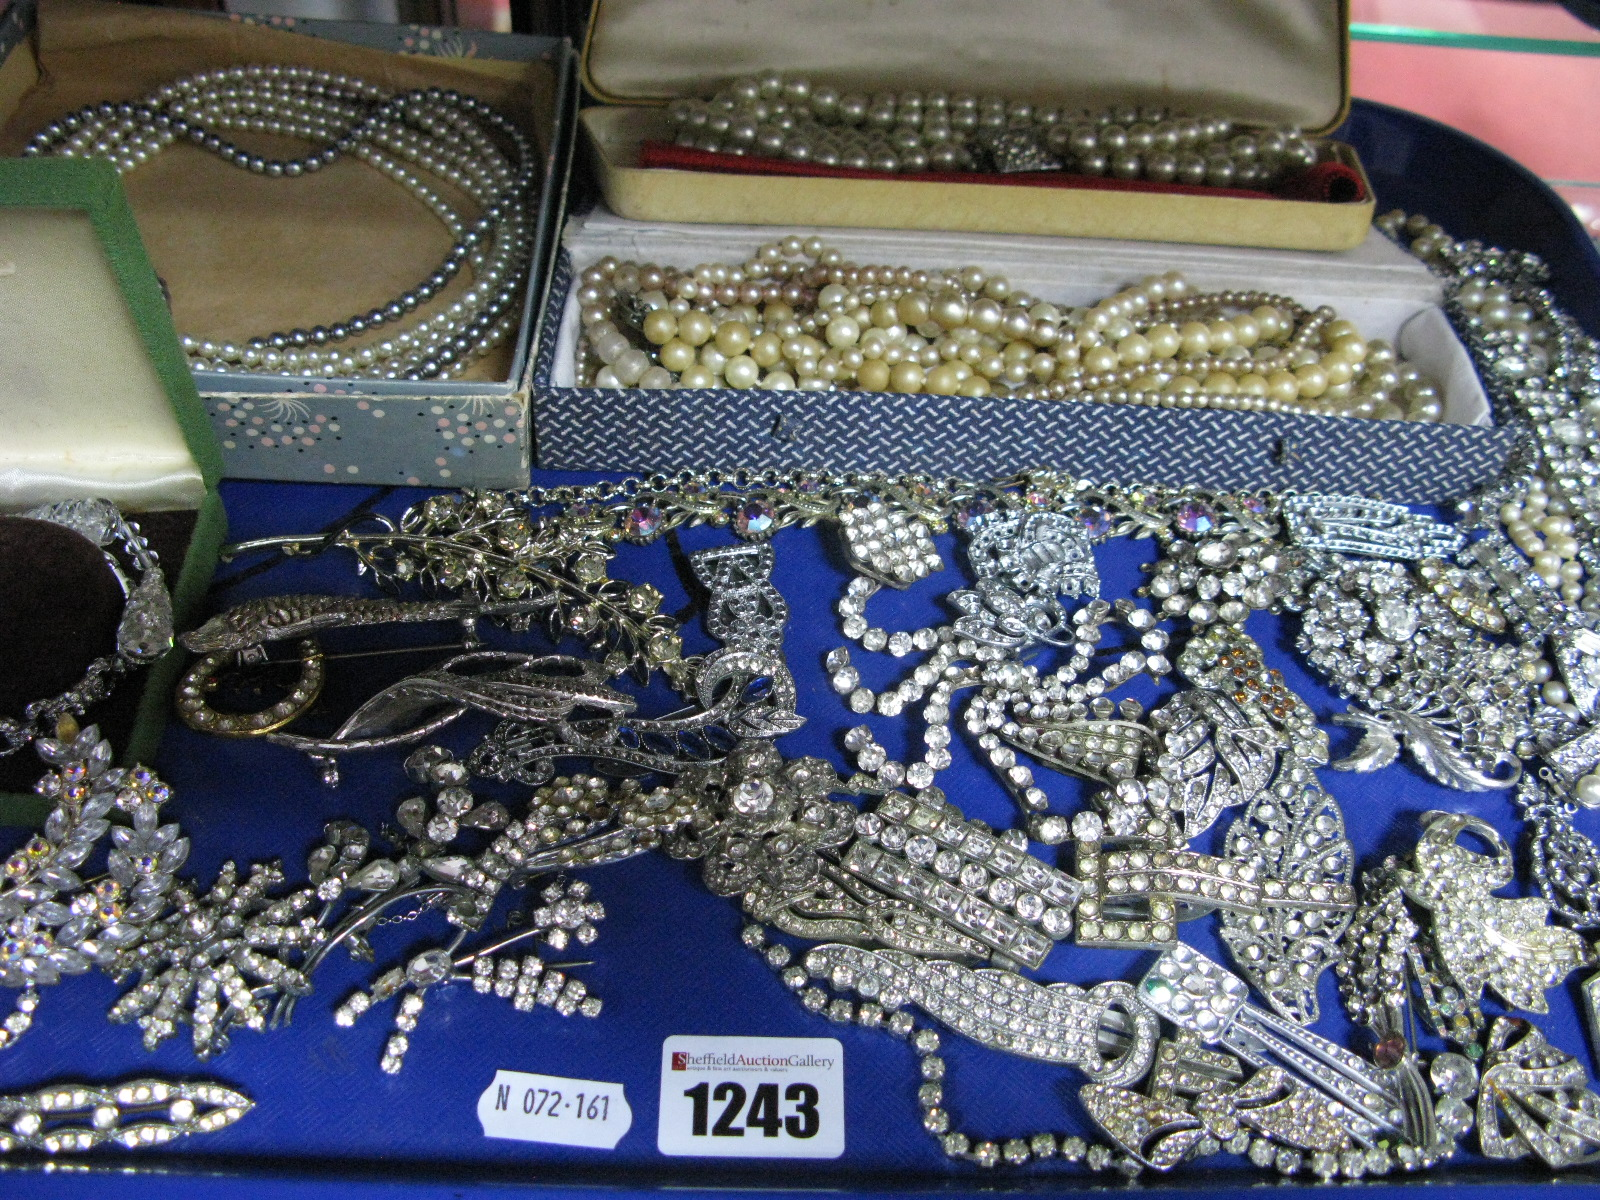 Lot 1243 - A Selection of Assorted Costume Jewellery, including imitation pearl necklaces, assorted floral